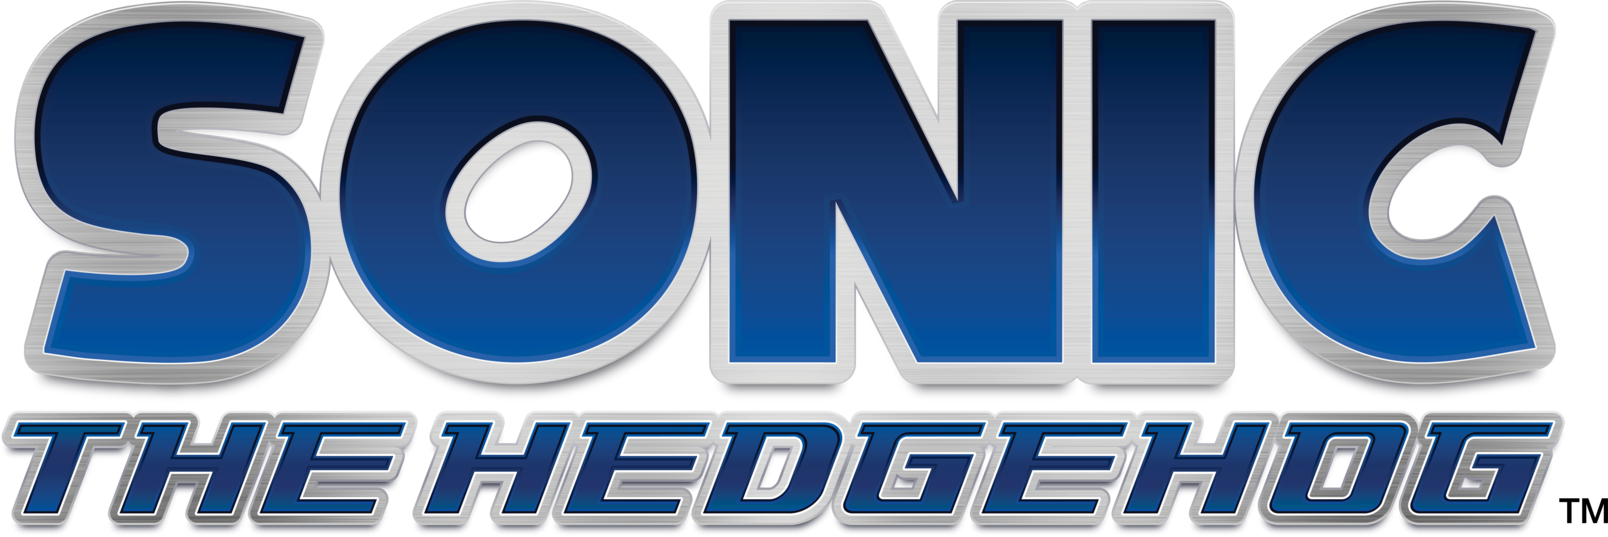 File Sonic The Hedgehog Logo 2006 Png Wikimedia Commons